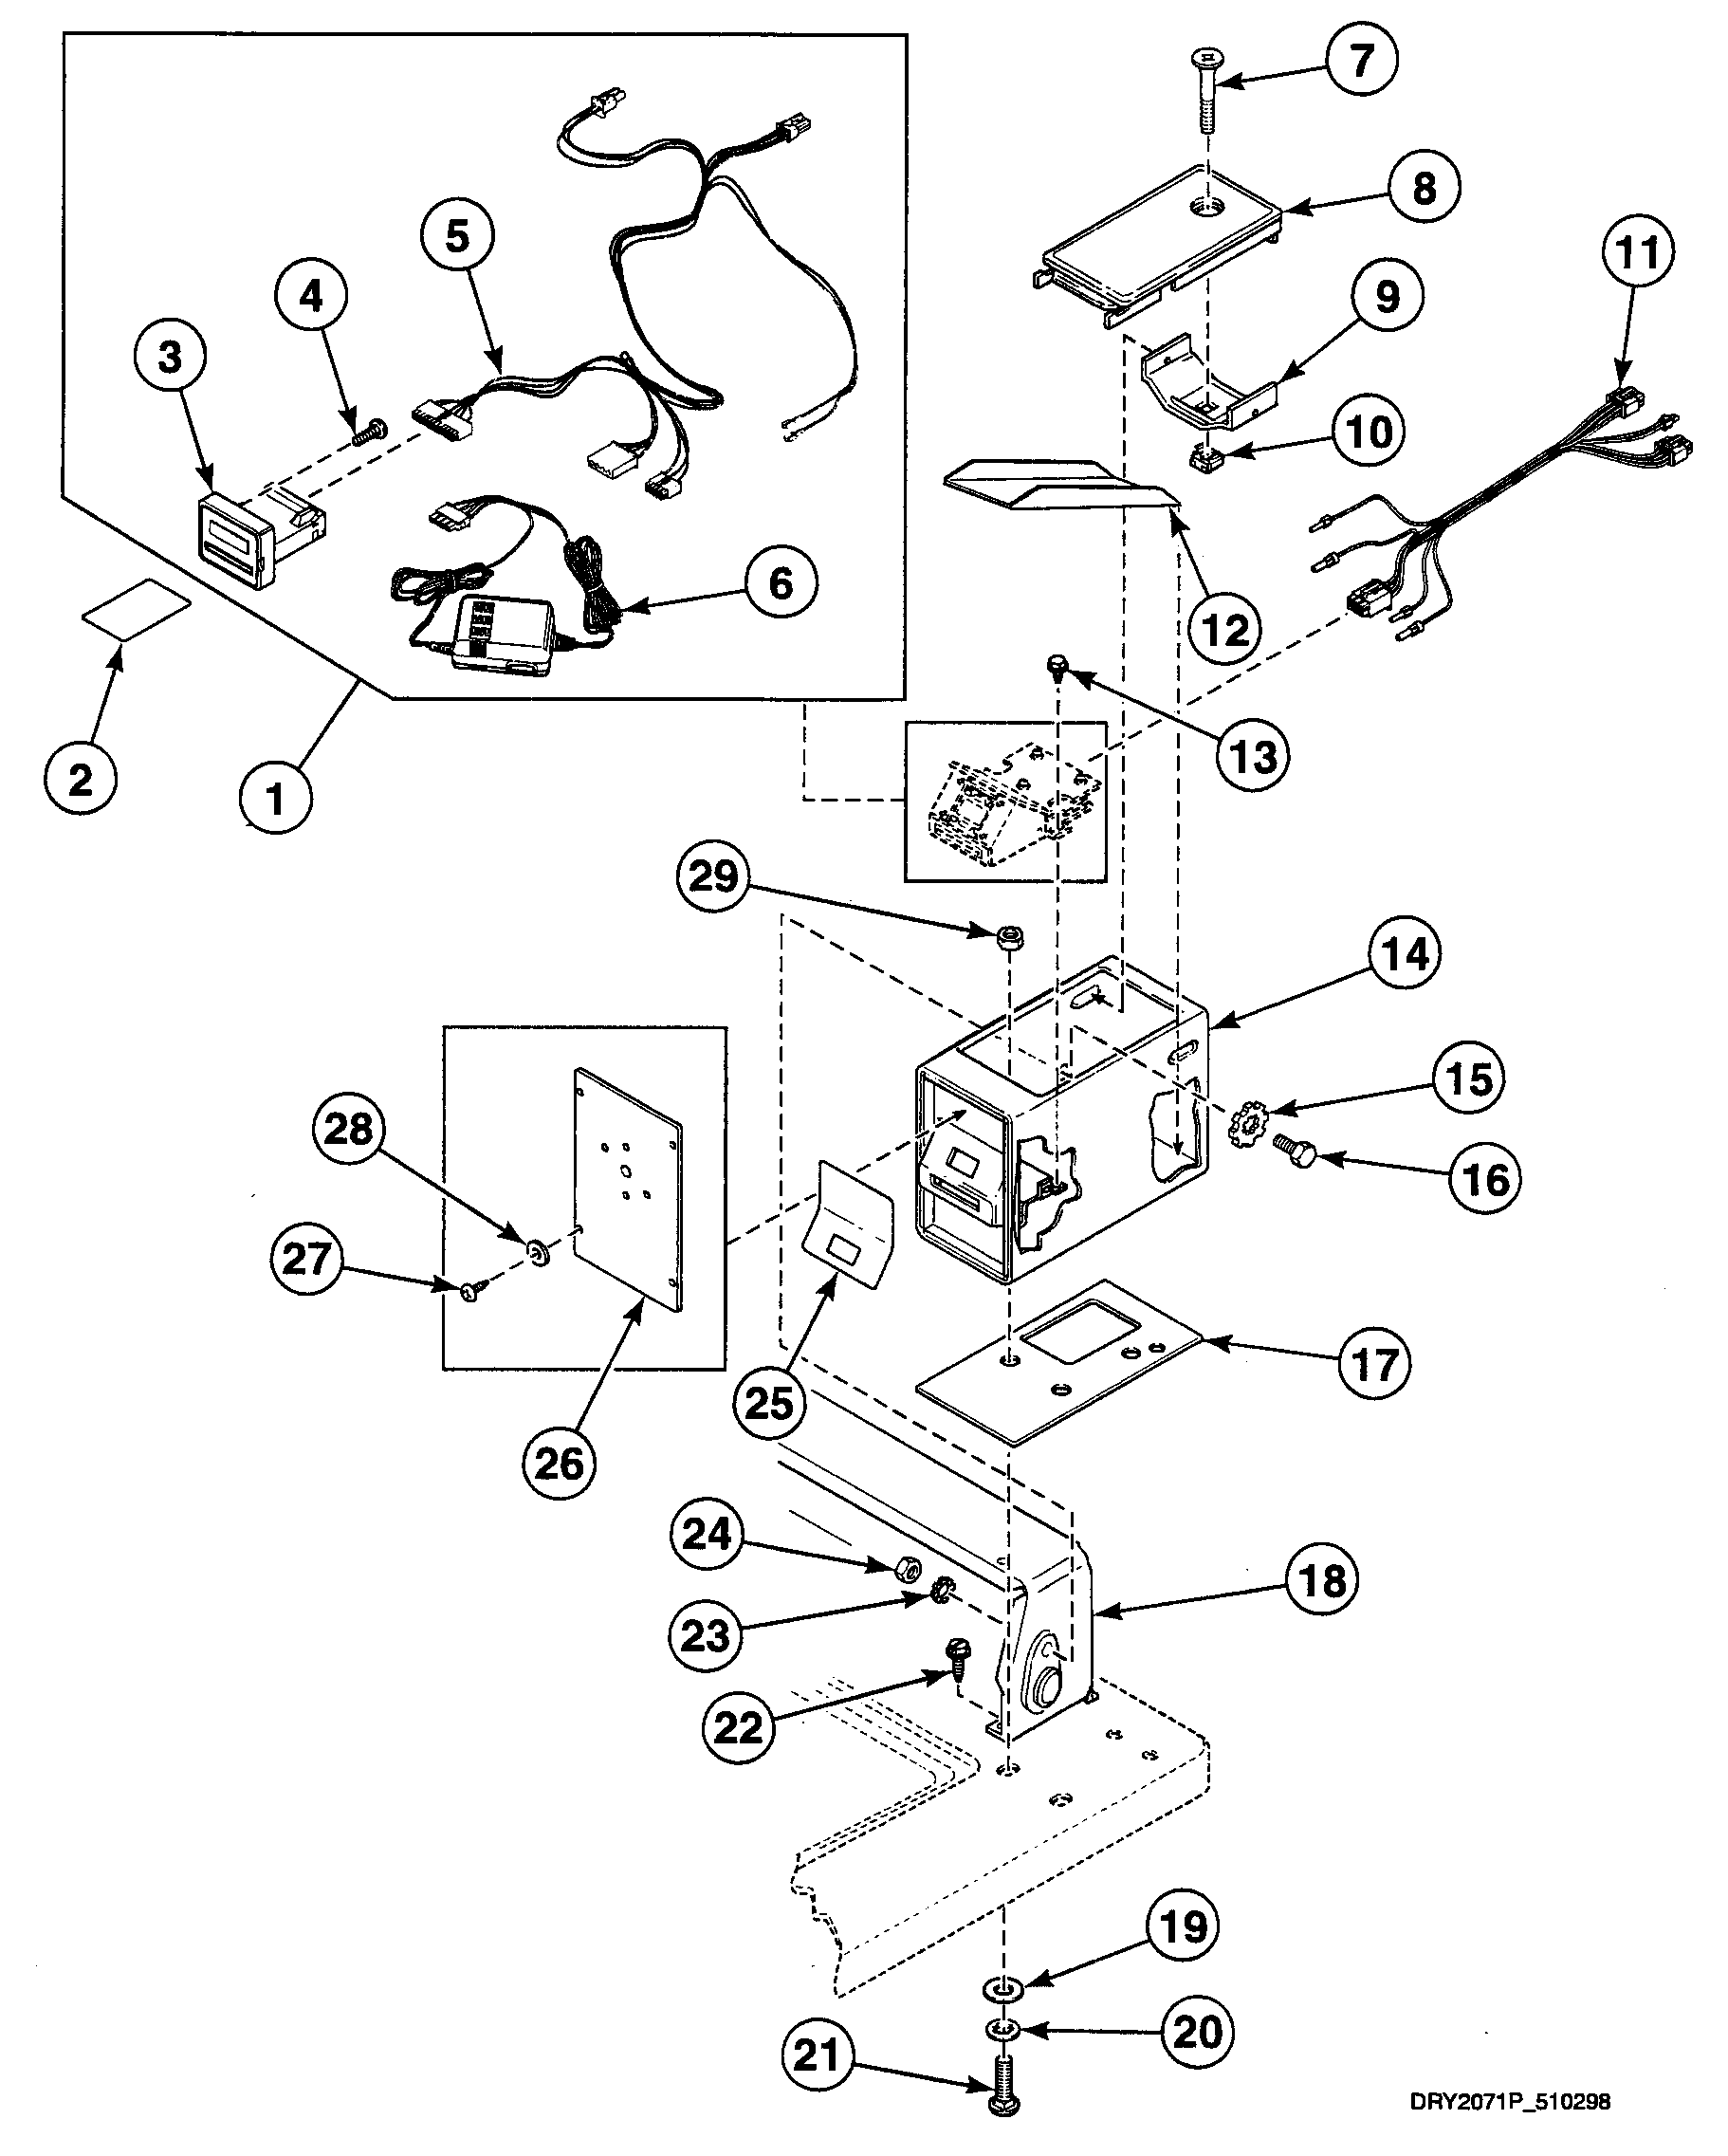 Sears Wall Furnace Wiring Diagram, Sears, Free Engine